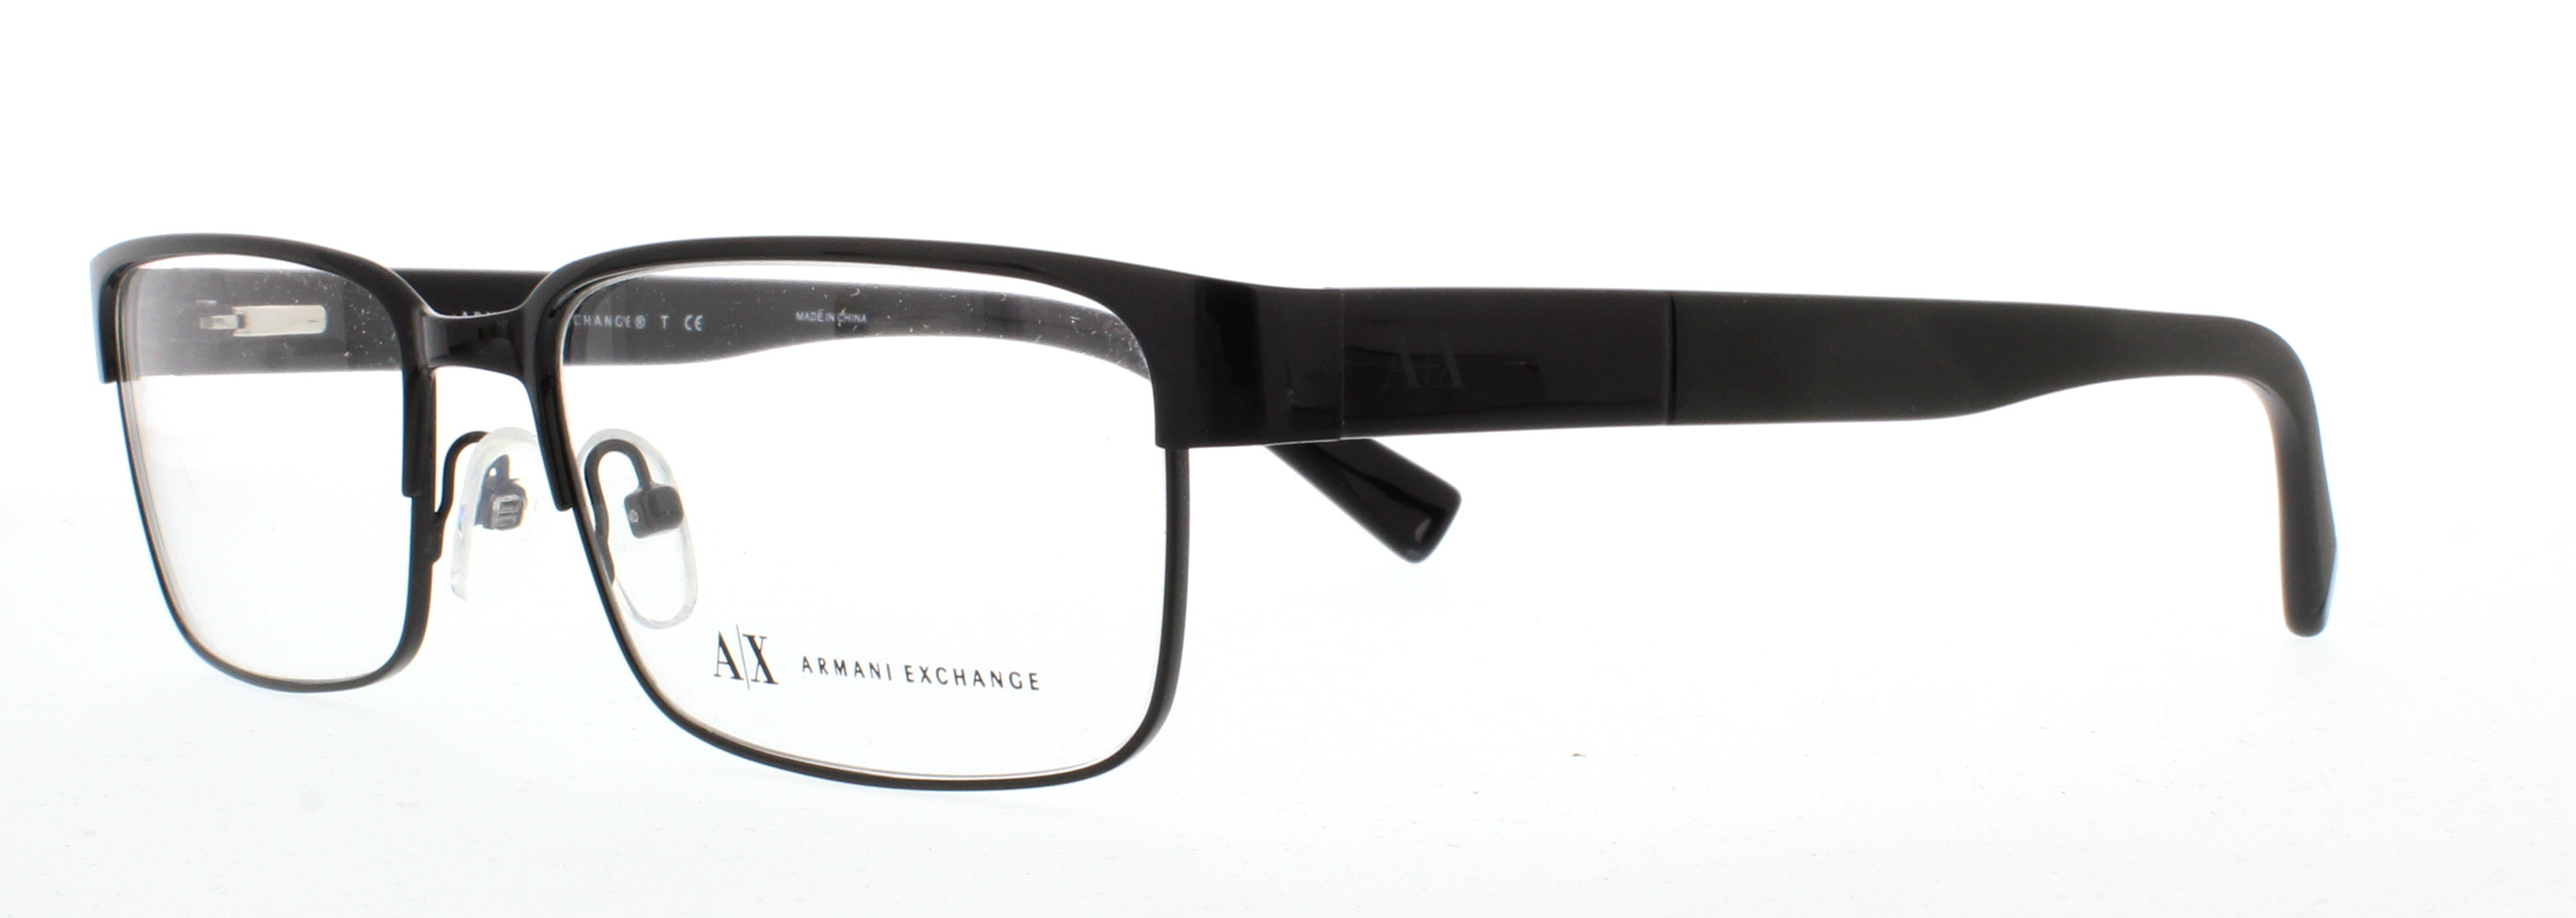 Picture of Armani Exchange AX1017